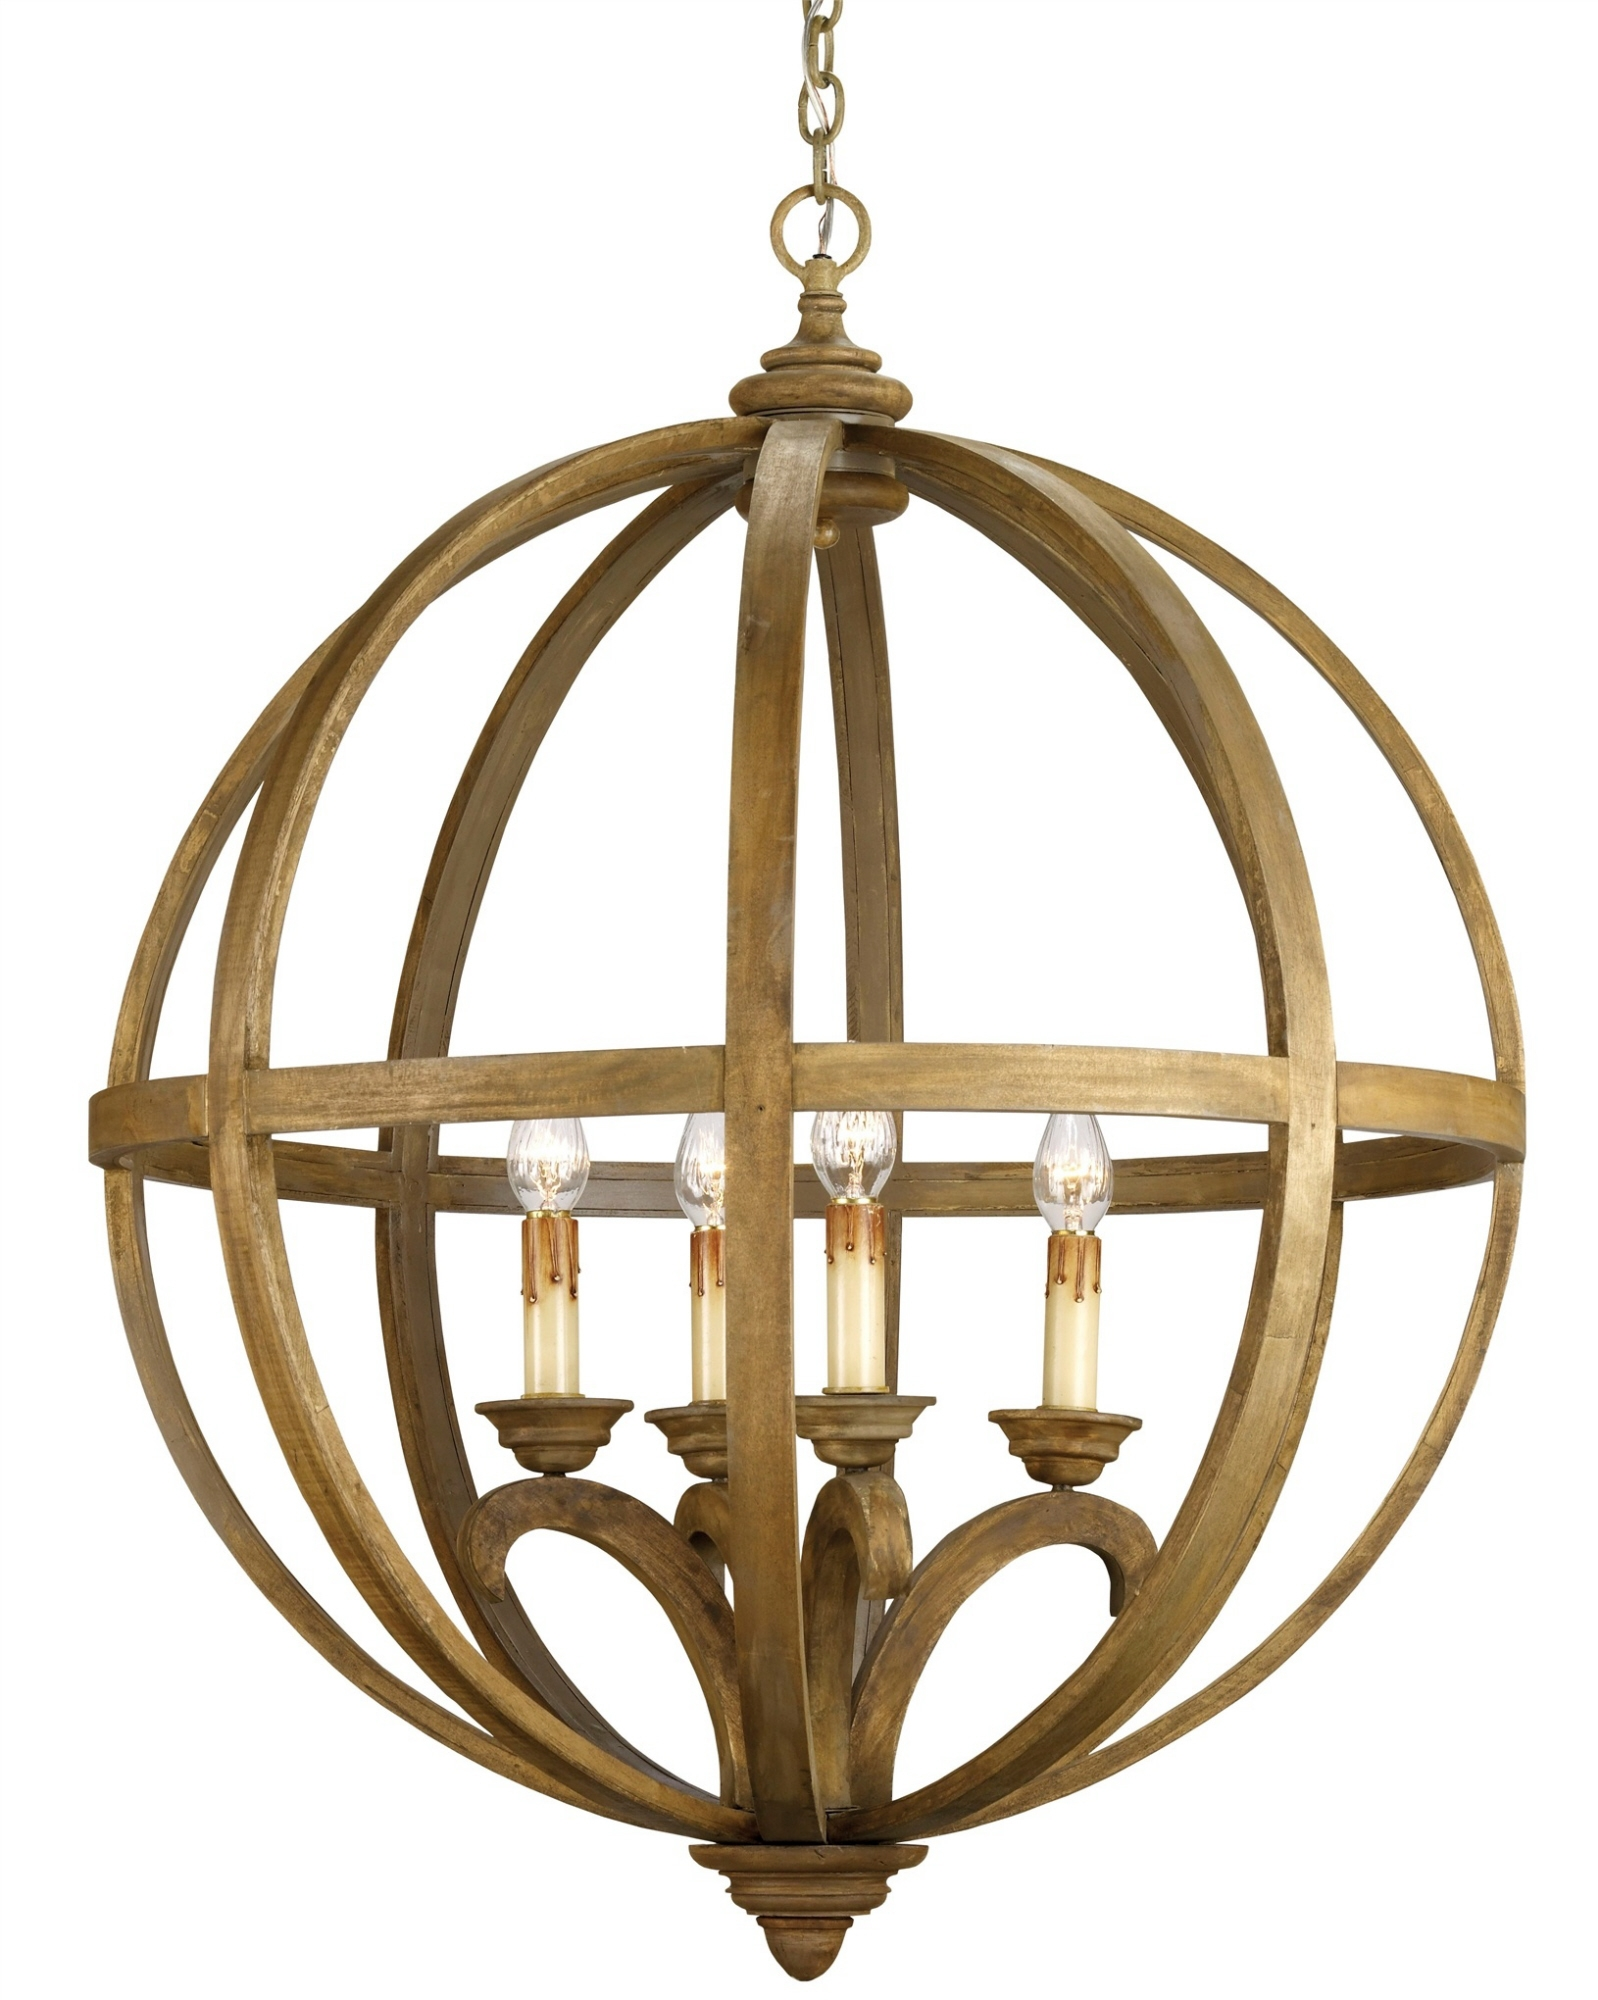 Axel Orb Chandelier Lighting Currey And Company With Regard To Orb Chandeliers (Image 2 of 25)